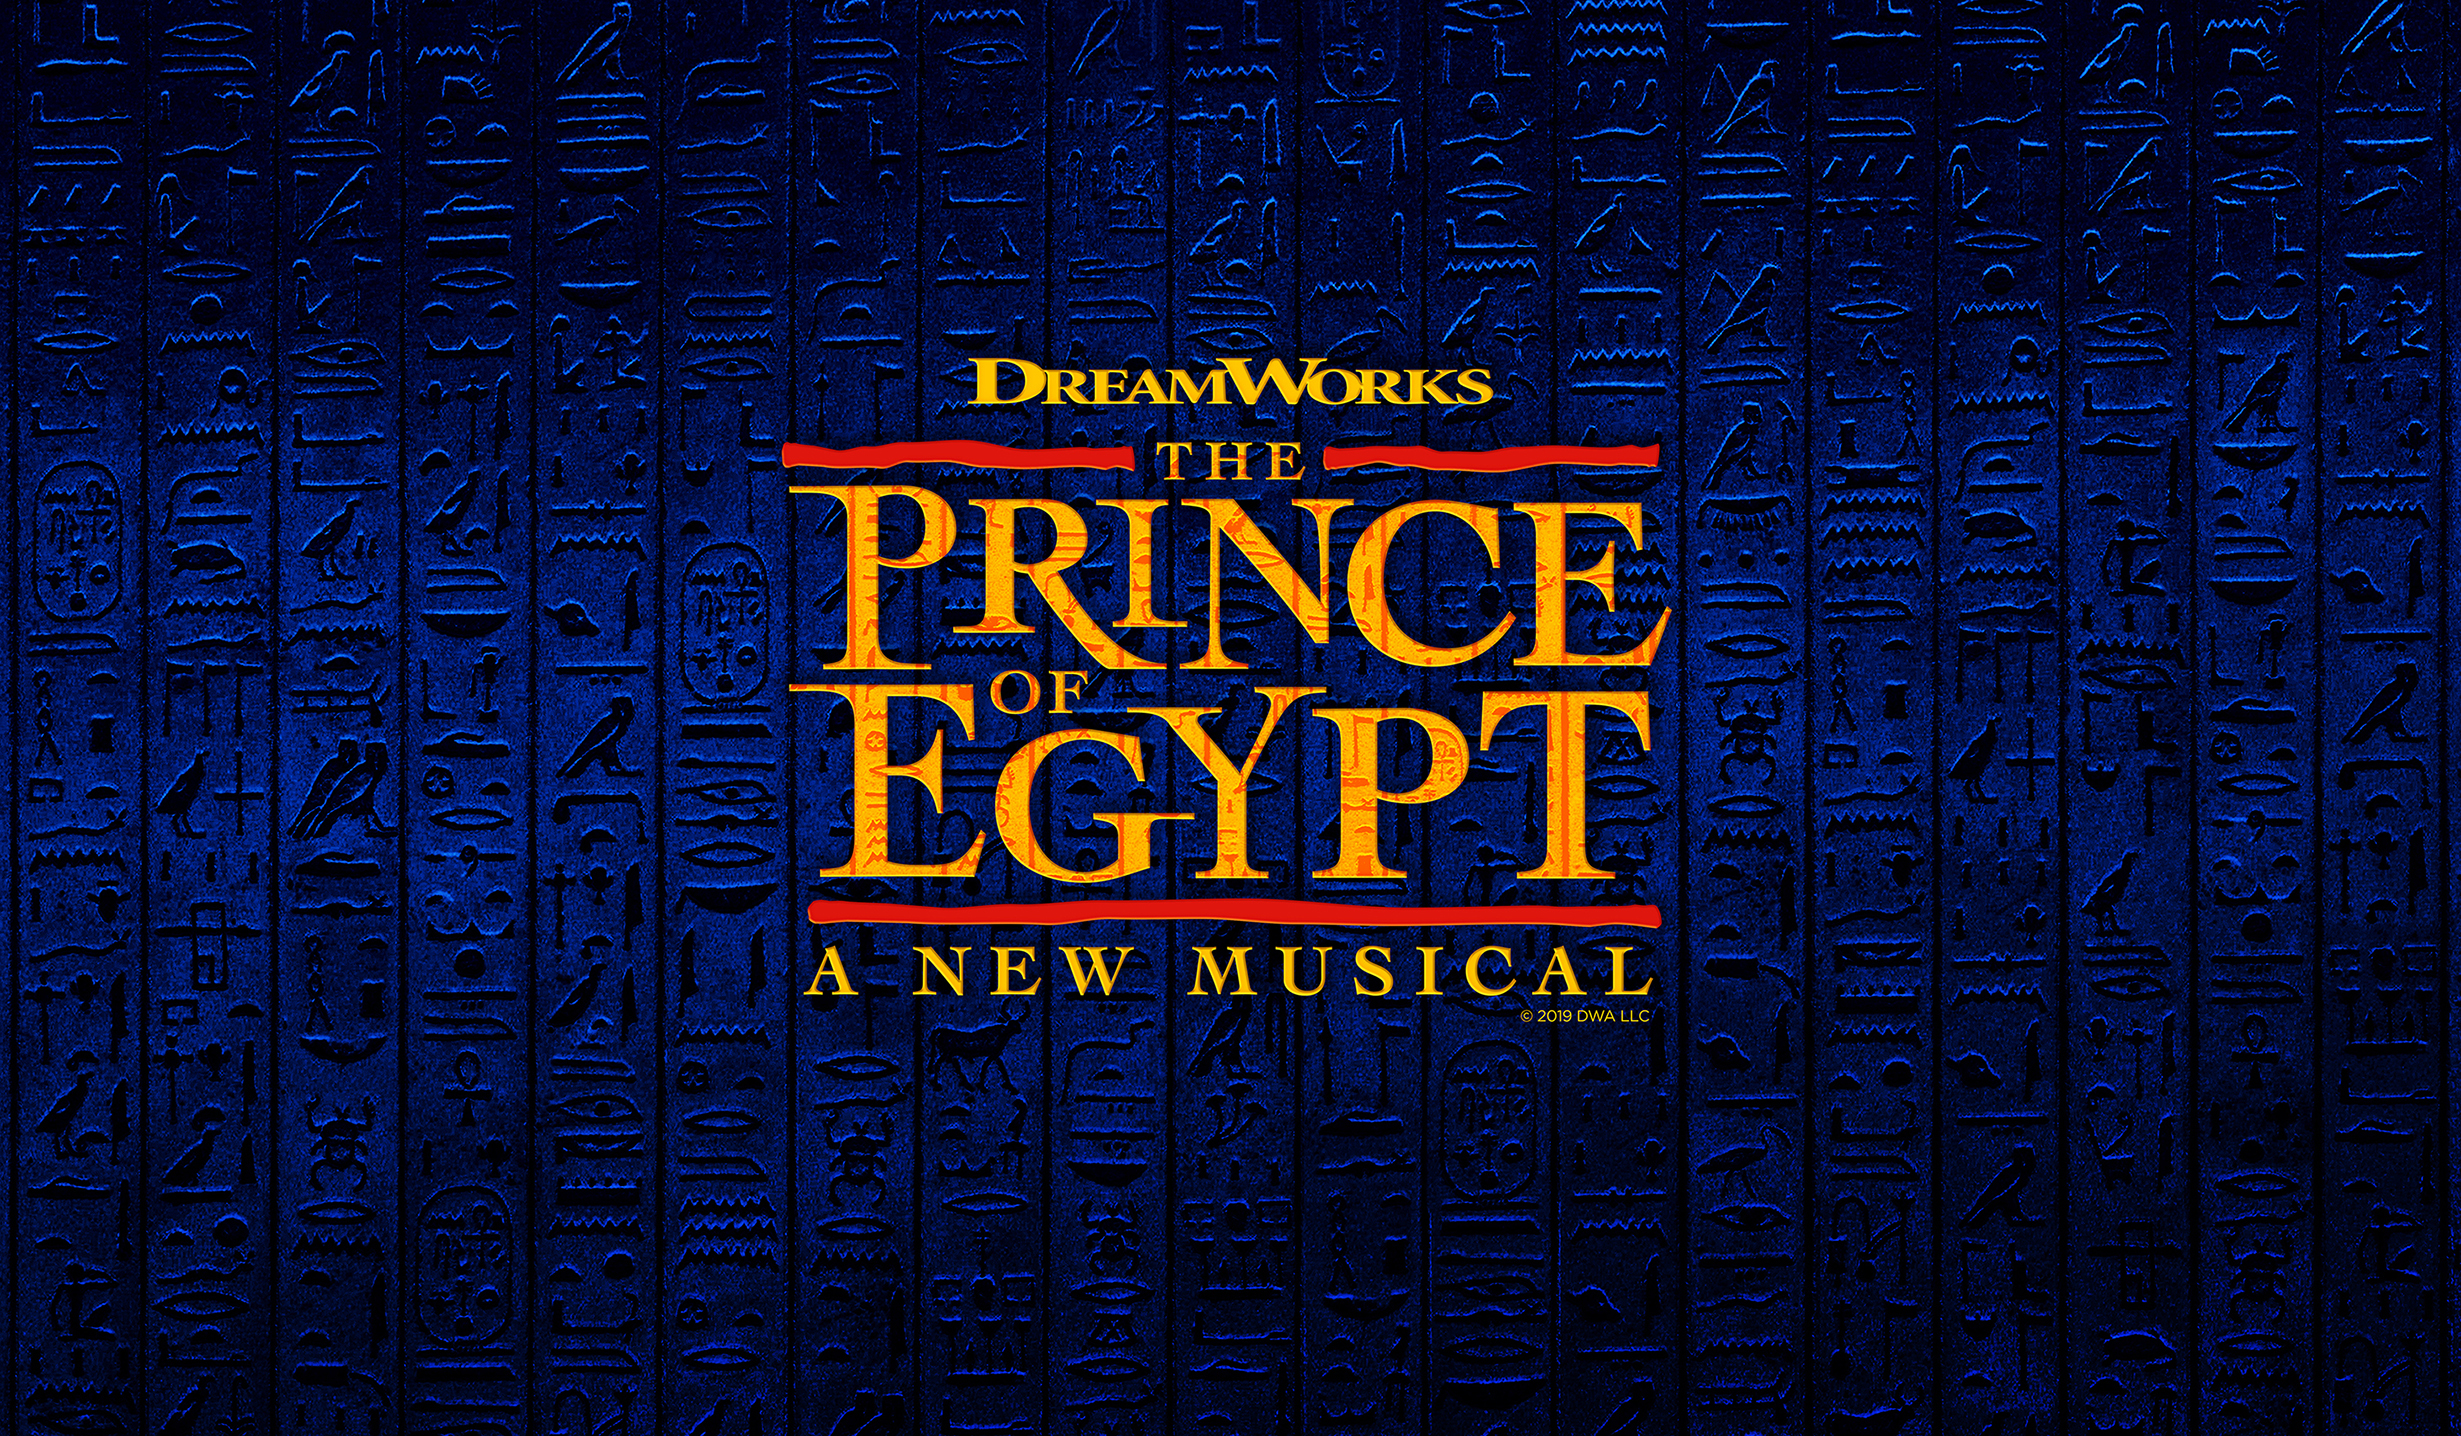 'The Prince of Egypt' comes to the West End in February 2020